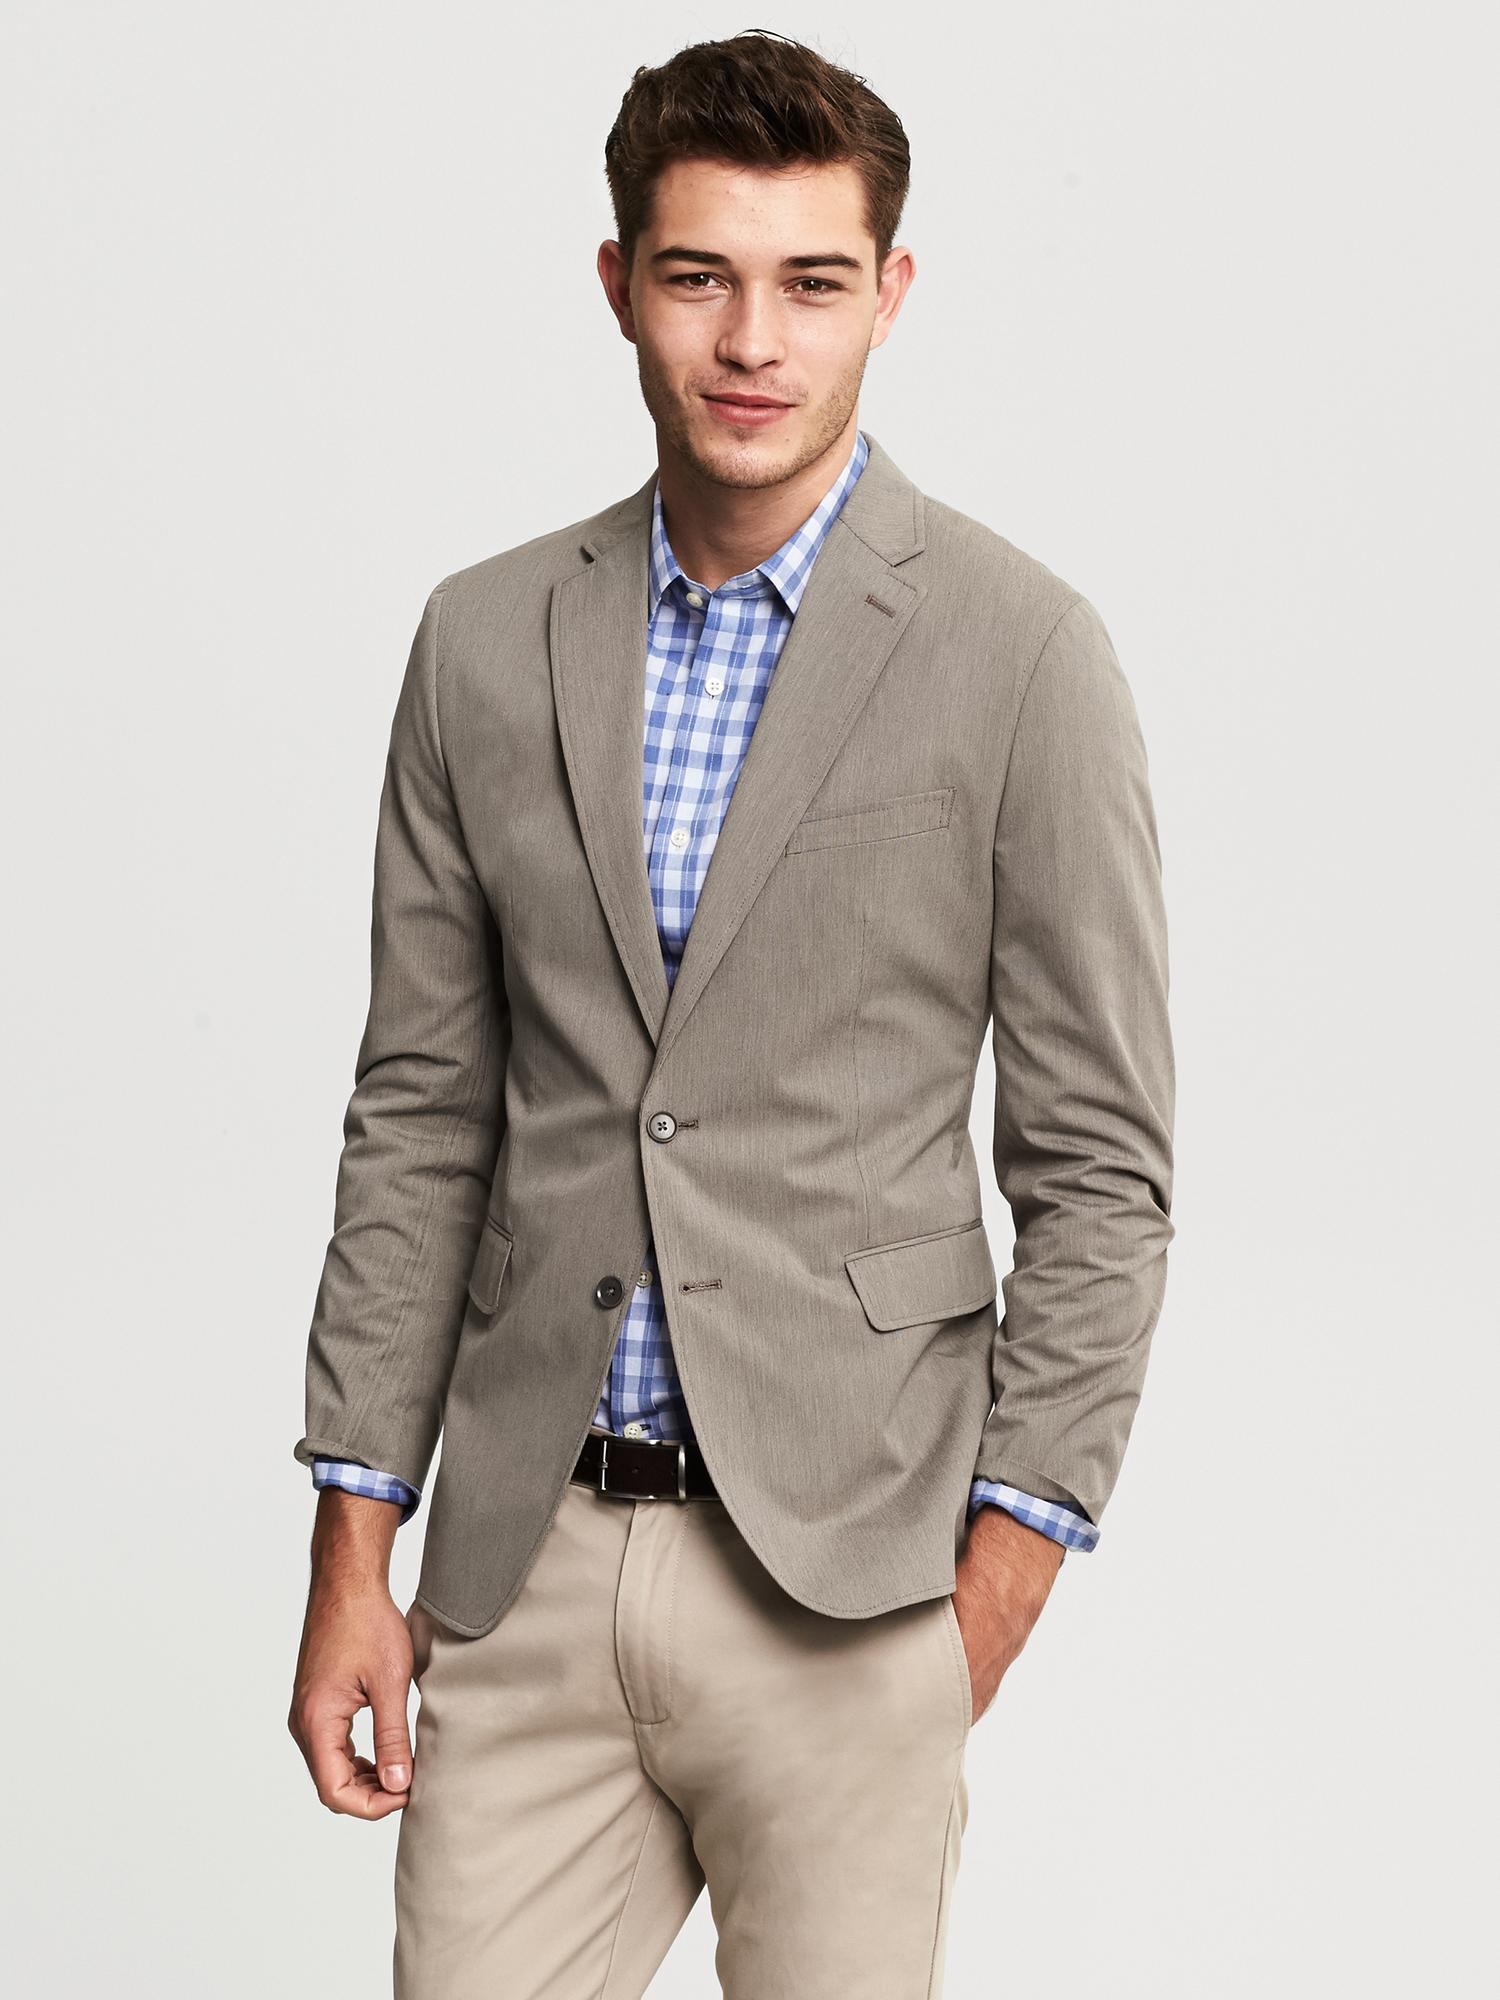 Find khaki blazer men at ShopStyle. Shop the latest collection of khaki blazer men from the most popular stores - all in one place.